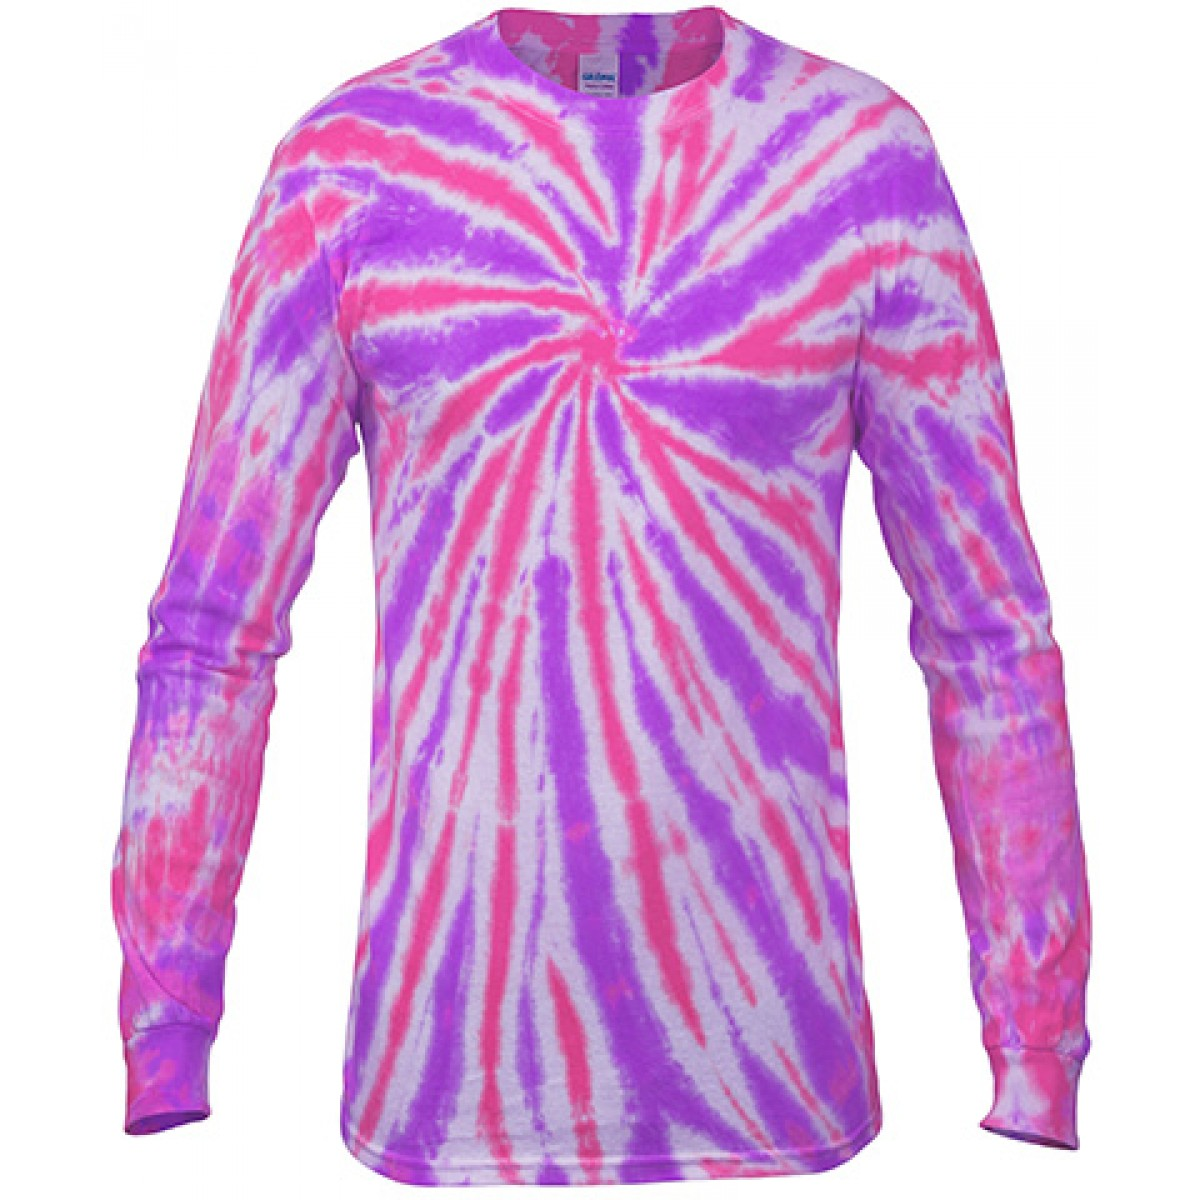 Multi Color Tie-Dye Long Sleeve Shirt -Purple-S